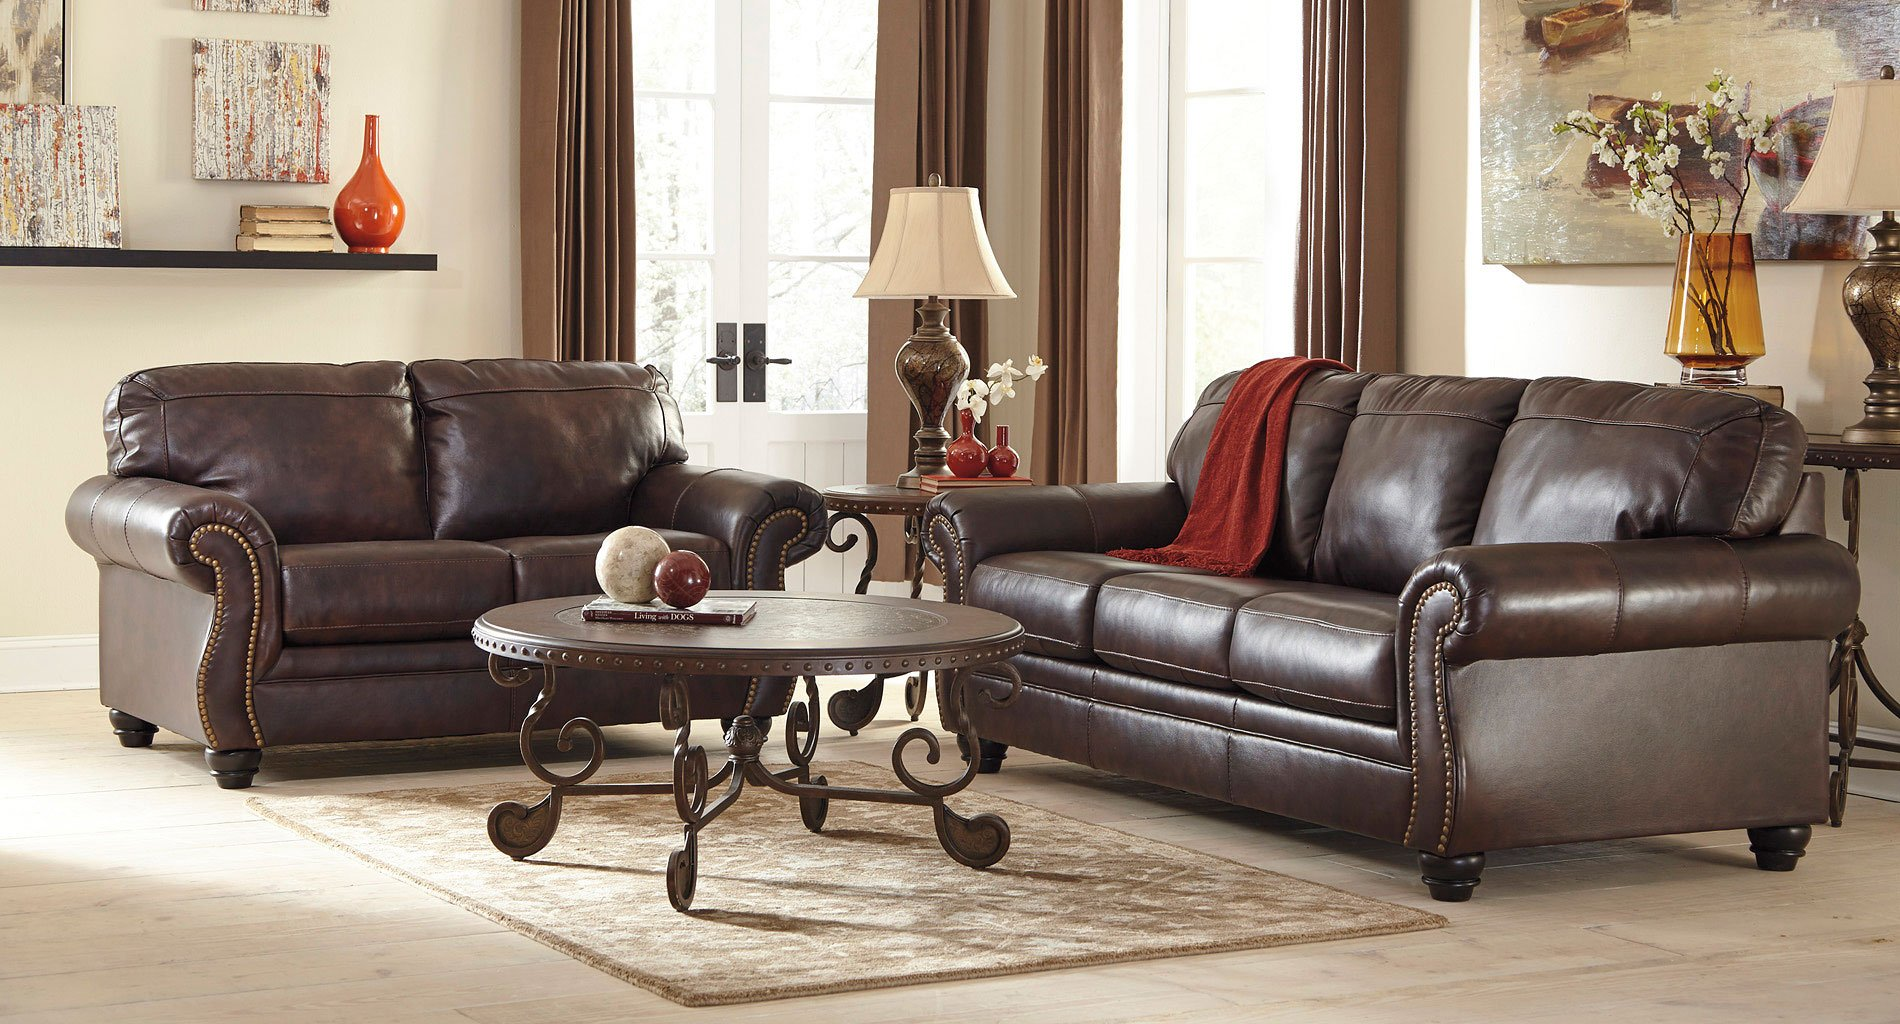 Bristan Walnut Living Room Set By Signature Design Ashley Furniturepick